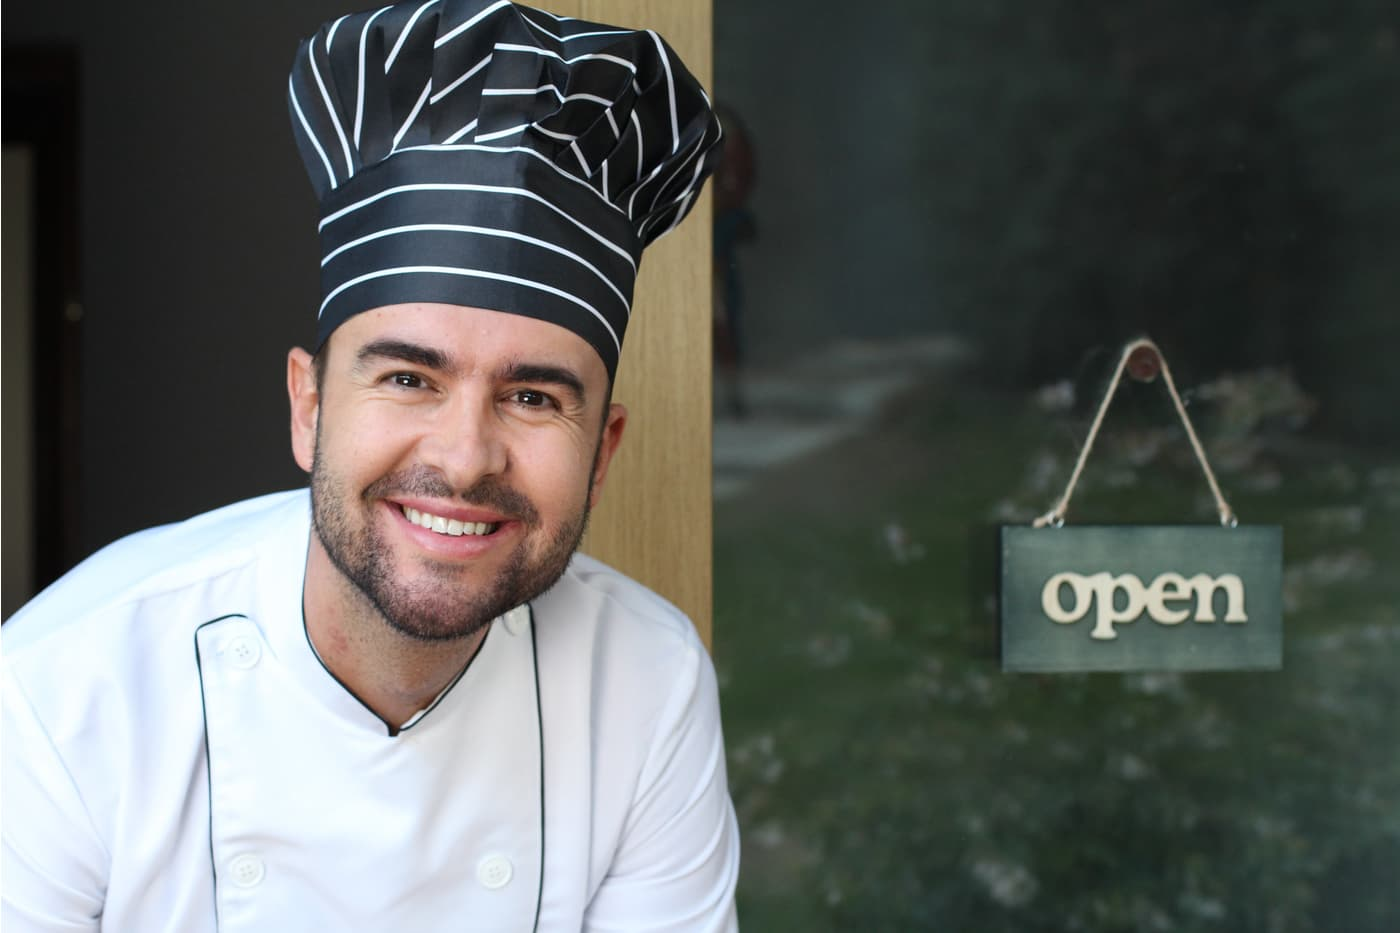 Chef with open sign in the background